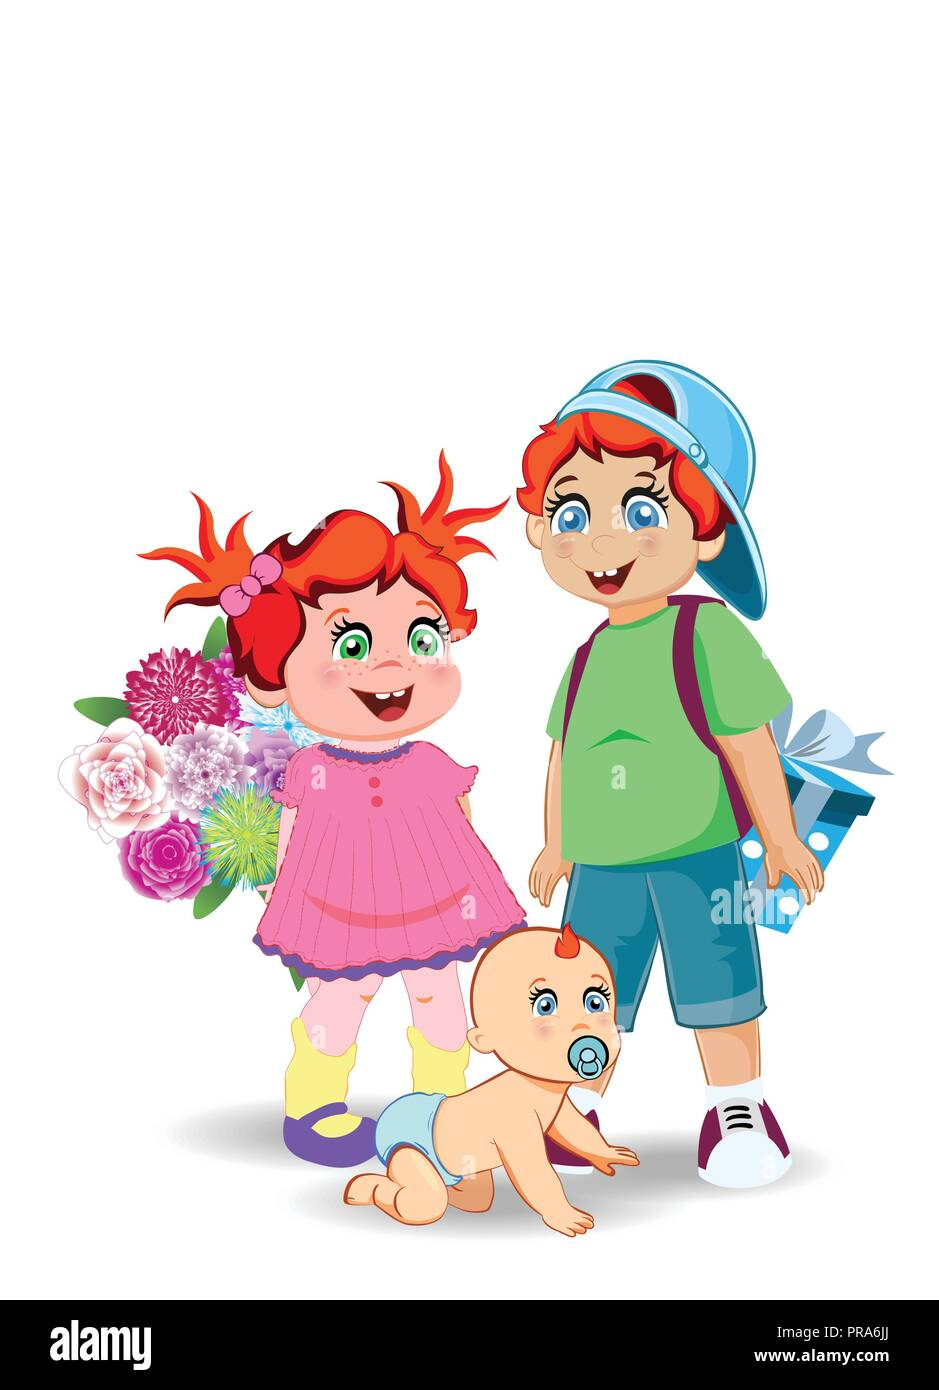 Festive Clip Art Of Boy Girl And Baby For Happy Birthday Back To